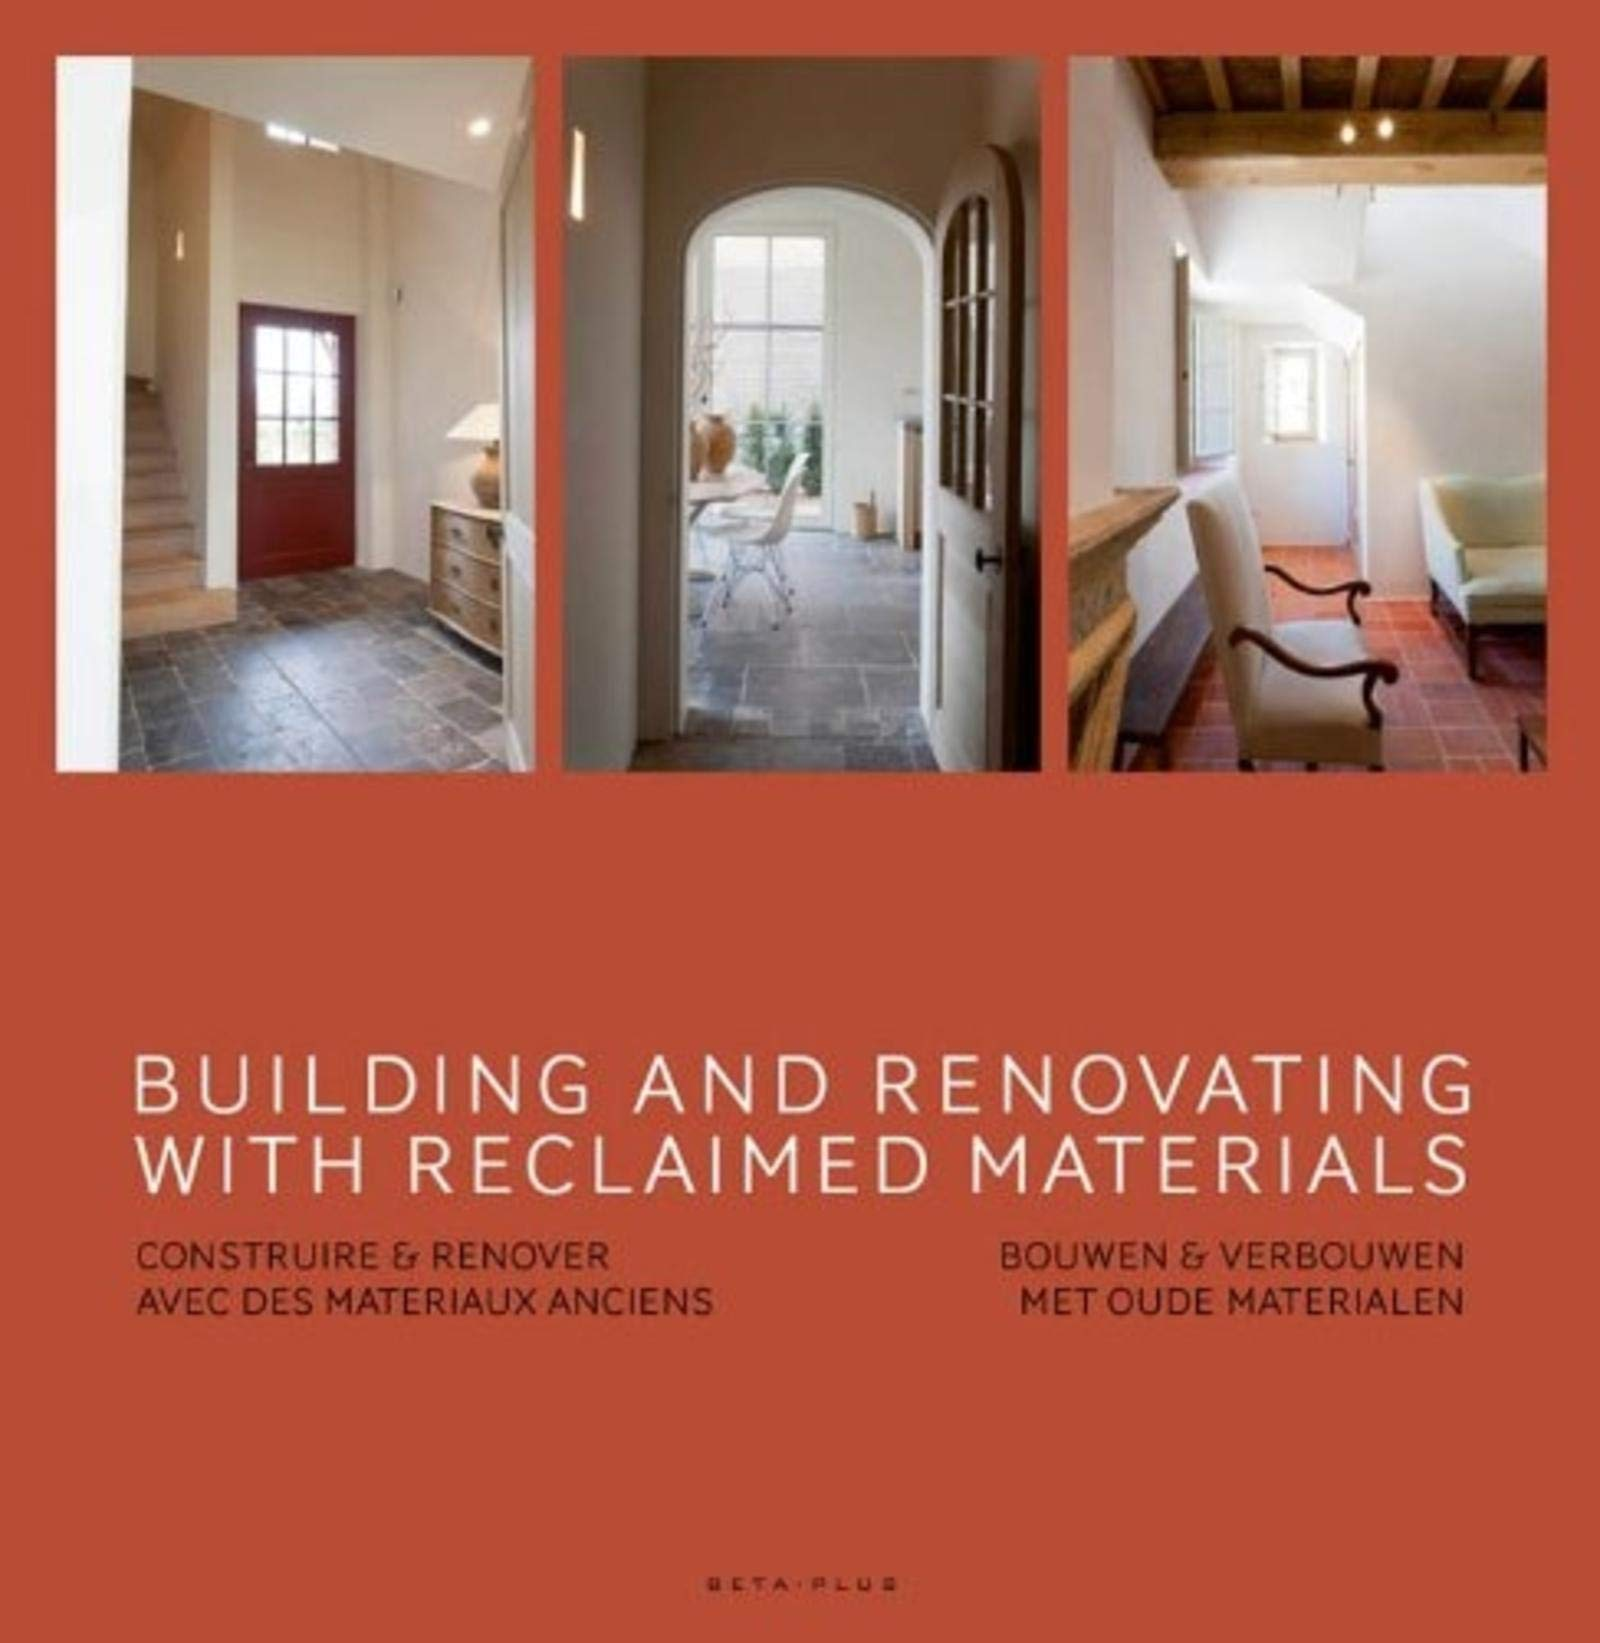 Building and renovating with reclaimed materials - construire et renover avec des materiaux anciens: Bouwen et verbouwen met oude materialen. Ouvrage multilingue. Ouvrages sur lhabitat: Amazon.es: Pauwels, Wim: Libros en idiomas extranjeros